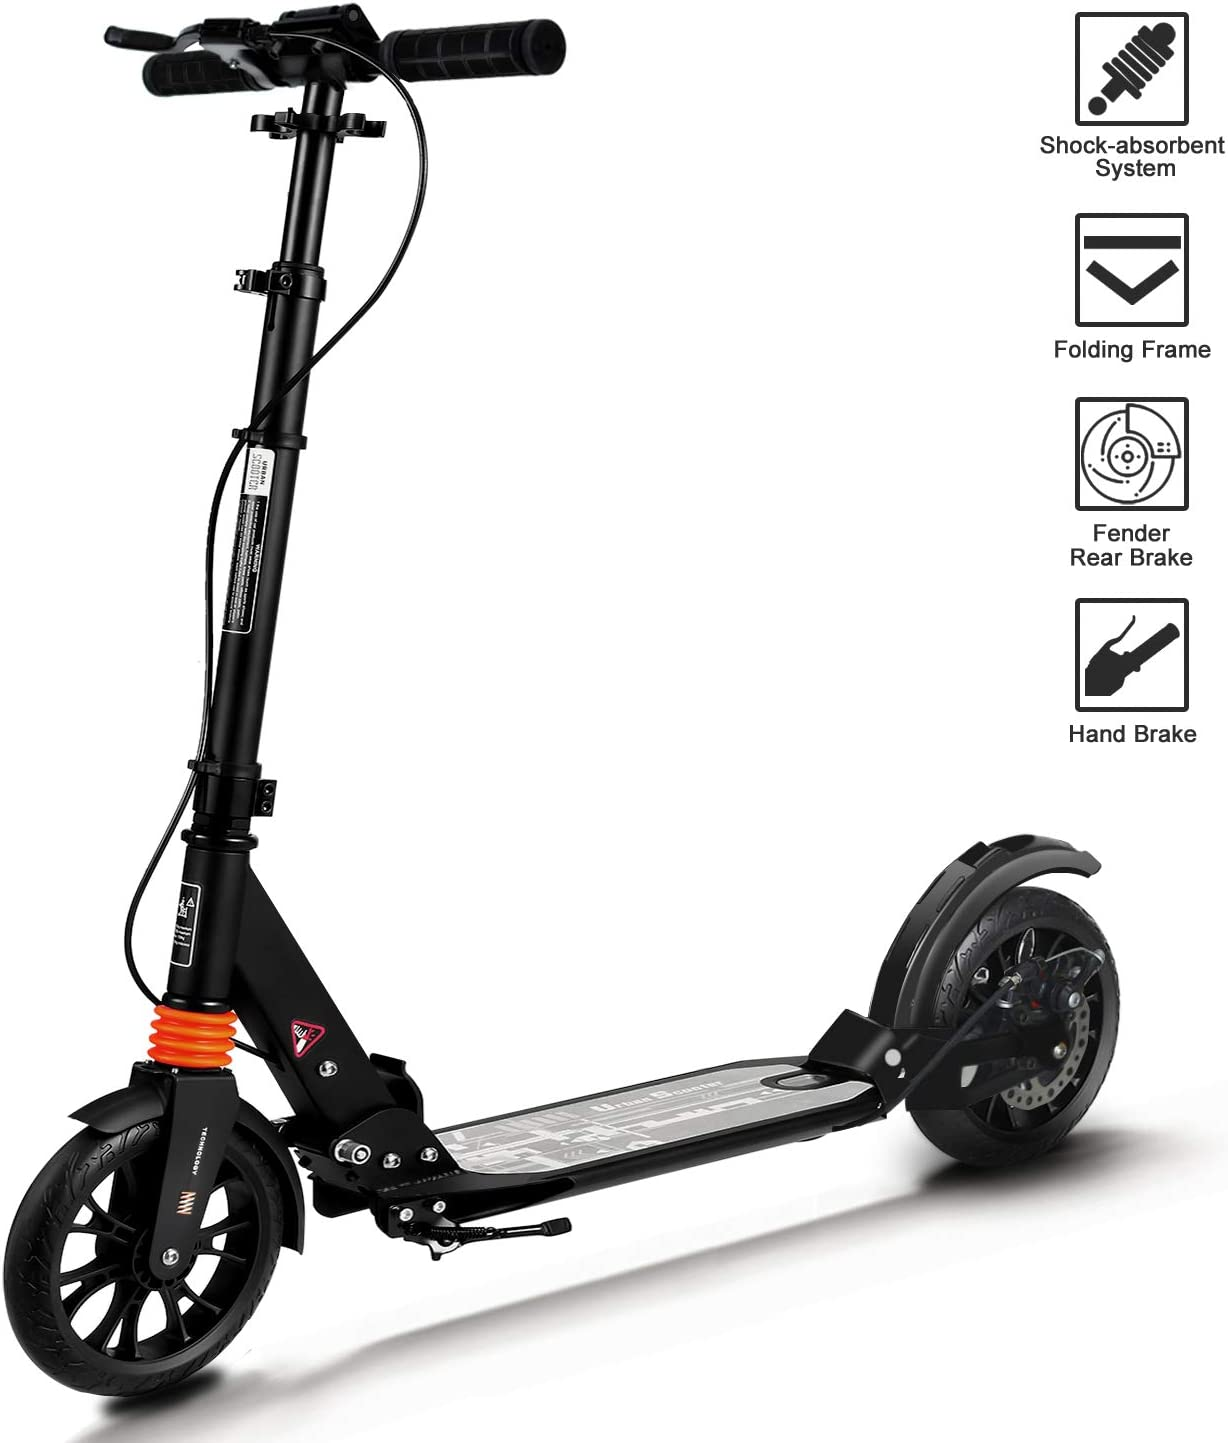 Adult Scooter 2019 Upgraded Kick Scooter Height-Adjustable Foldable Dual Suspension Rear Fender Brake Lightweight Aluminium Alloy Commuter 220lb Max ...